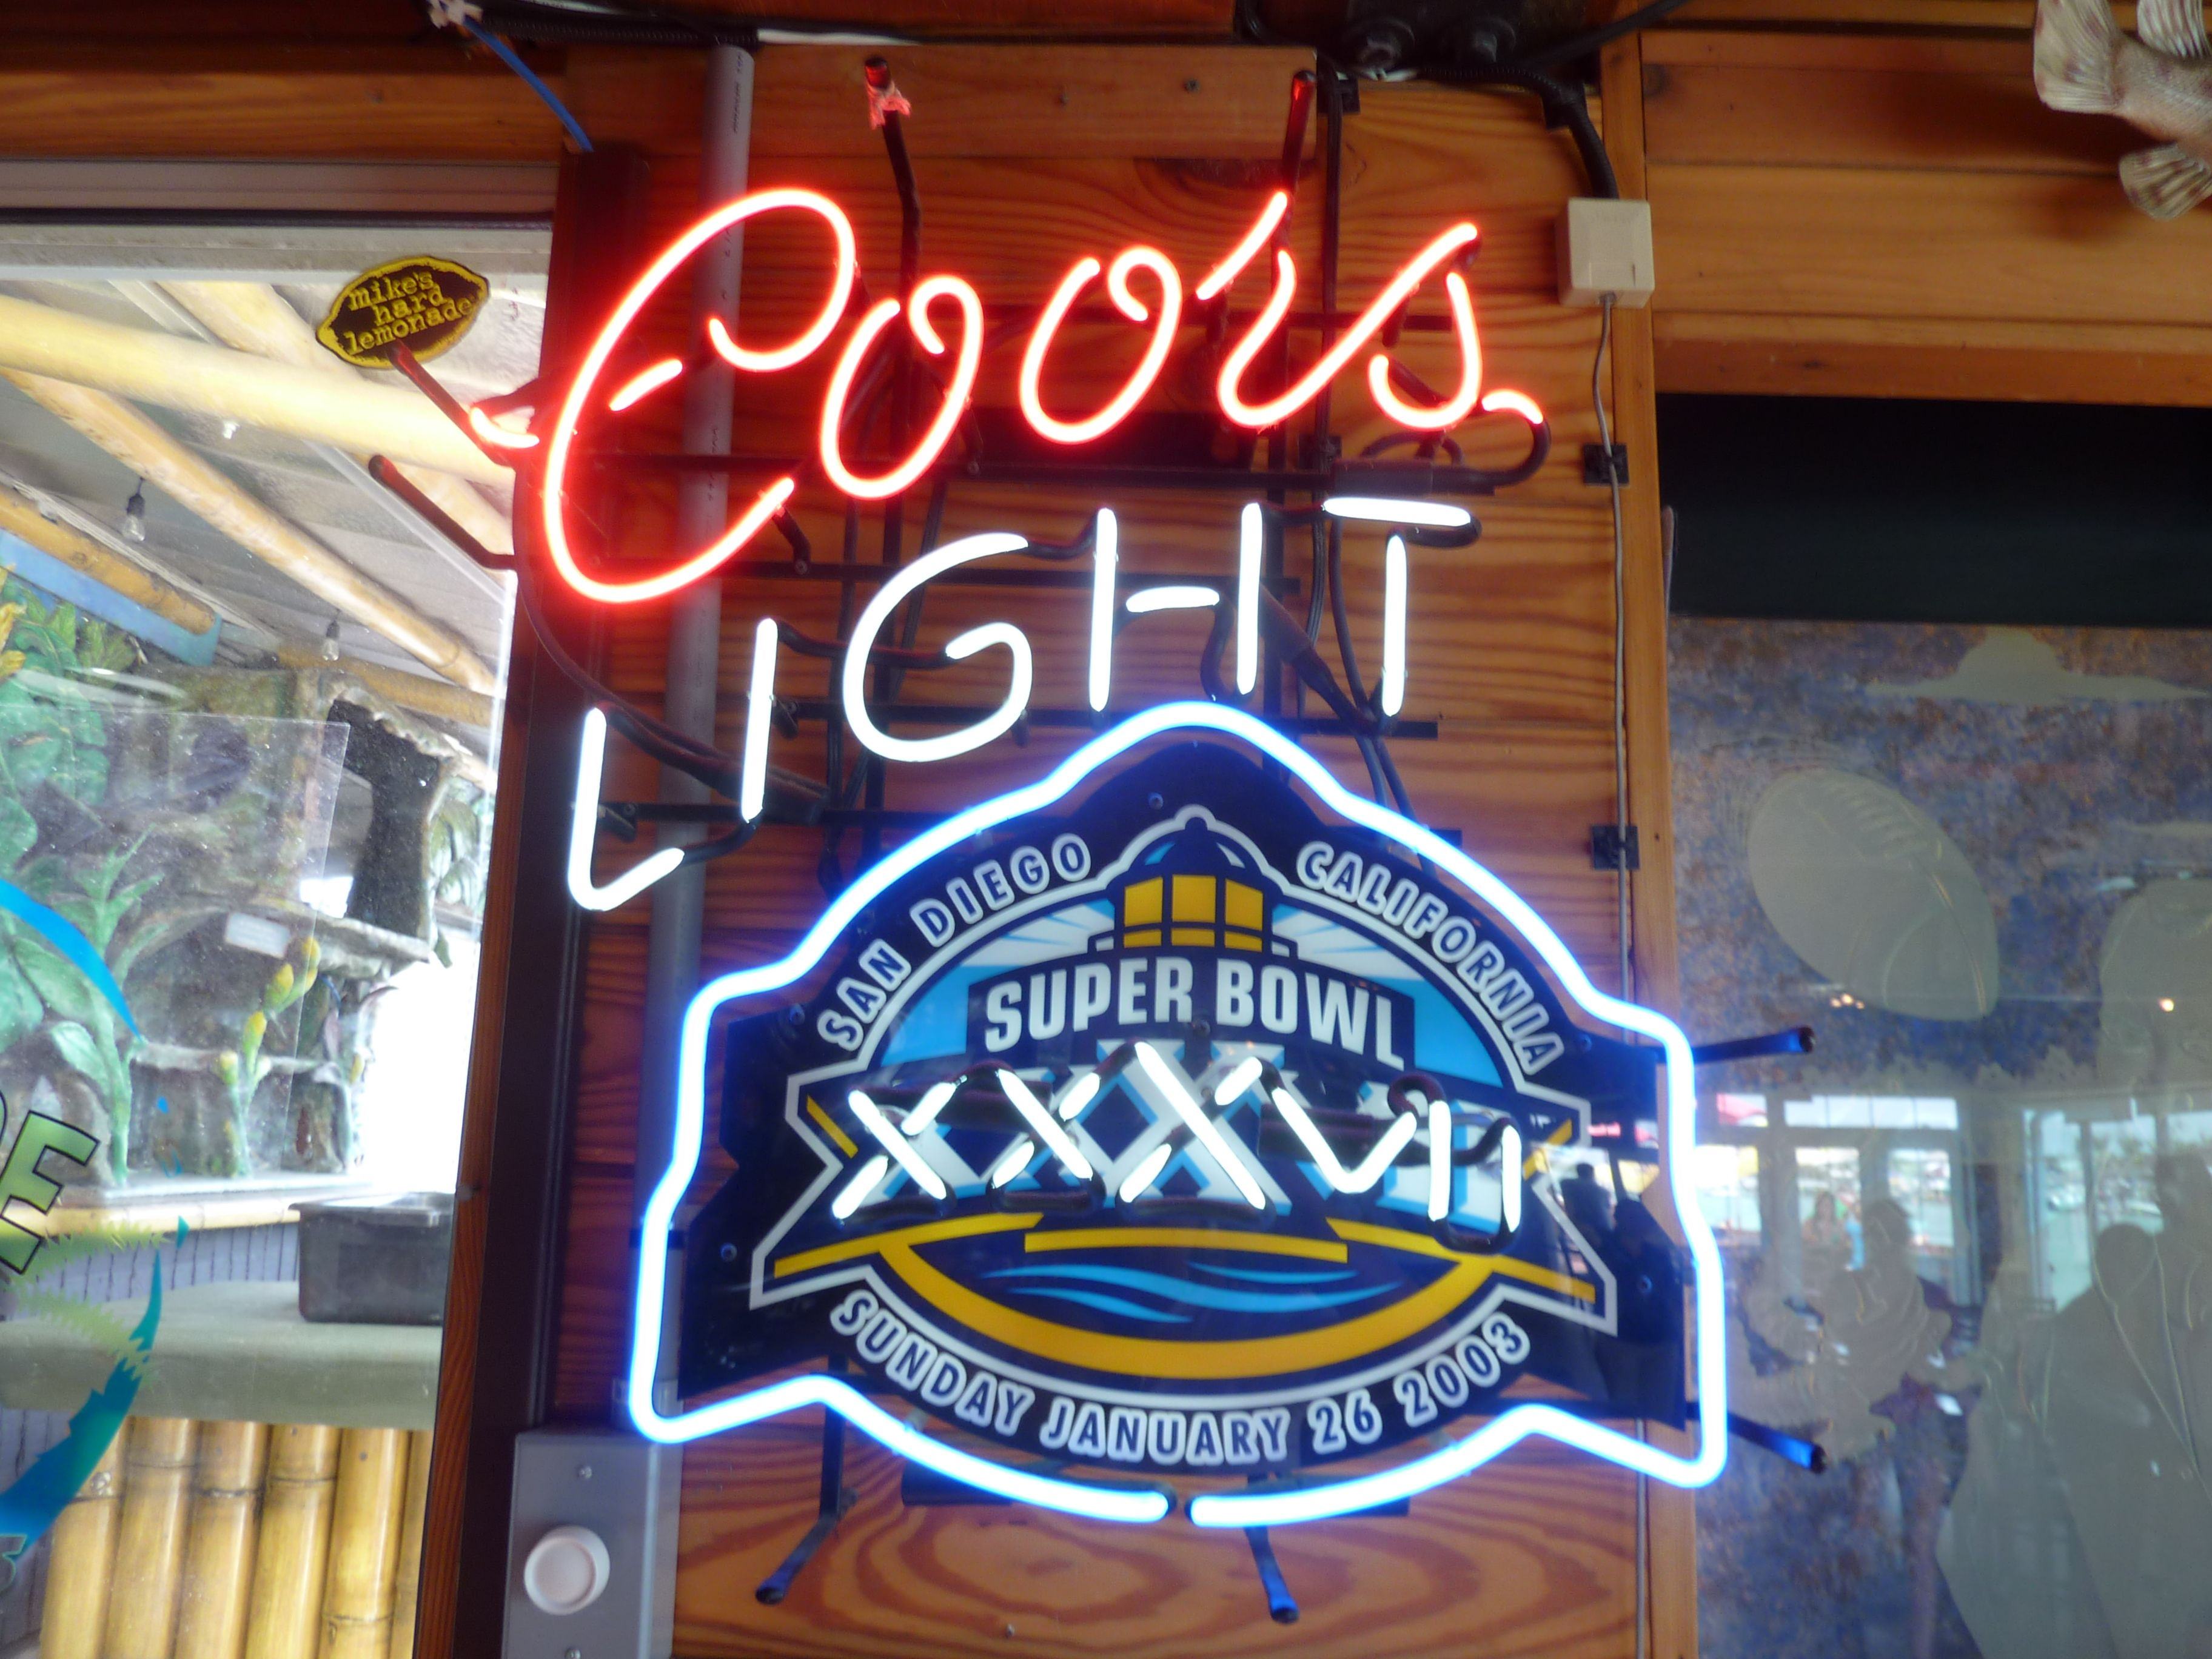 coors light neon beer sign super bowl xxxvii nfl football